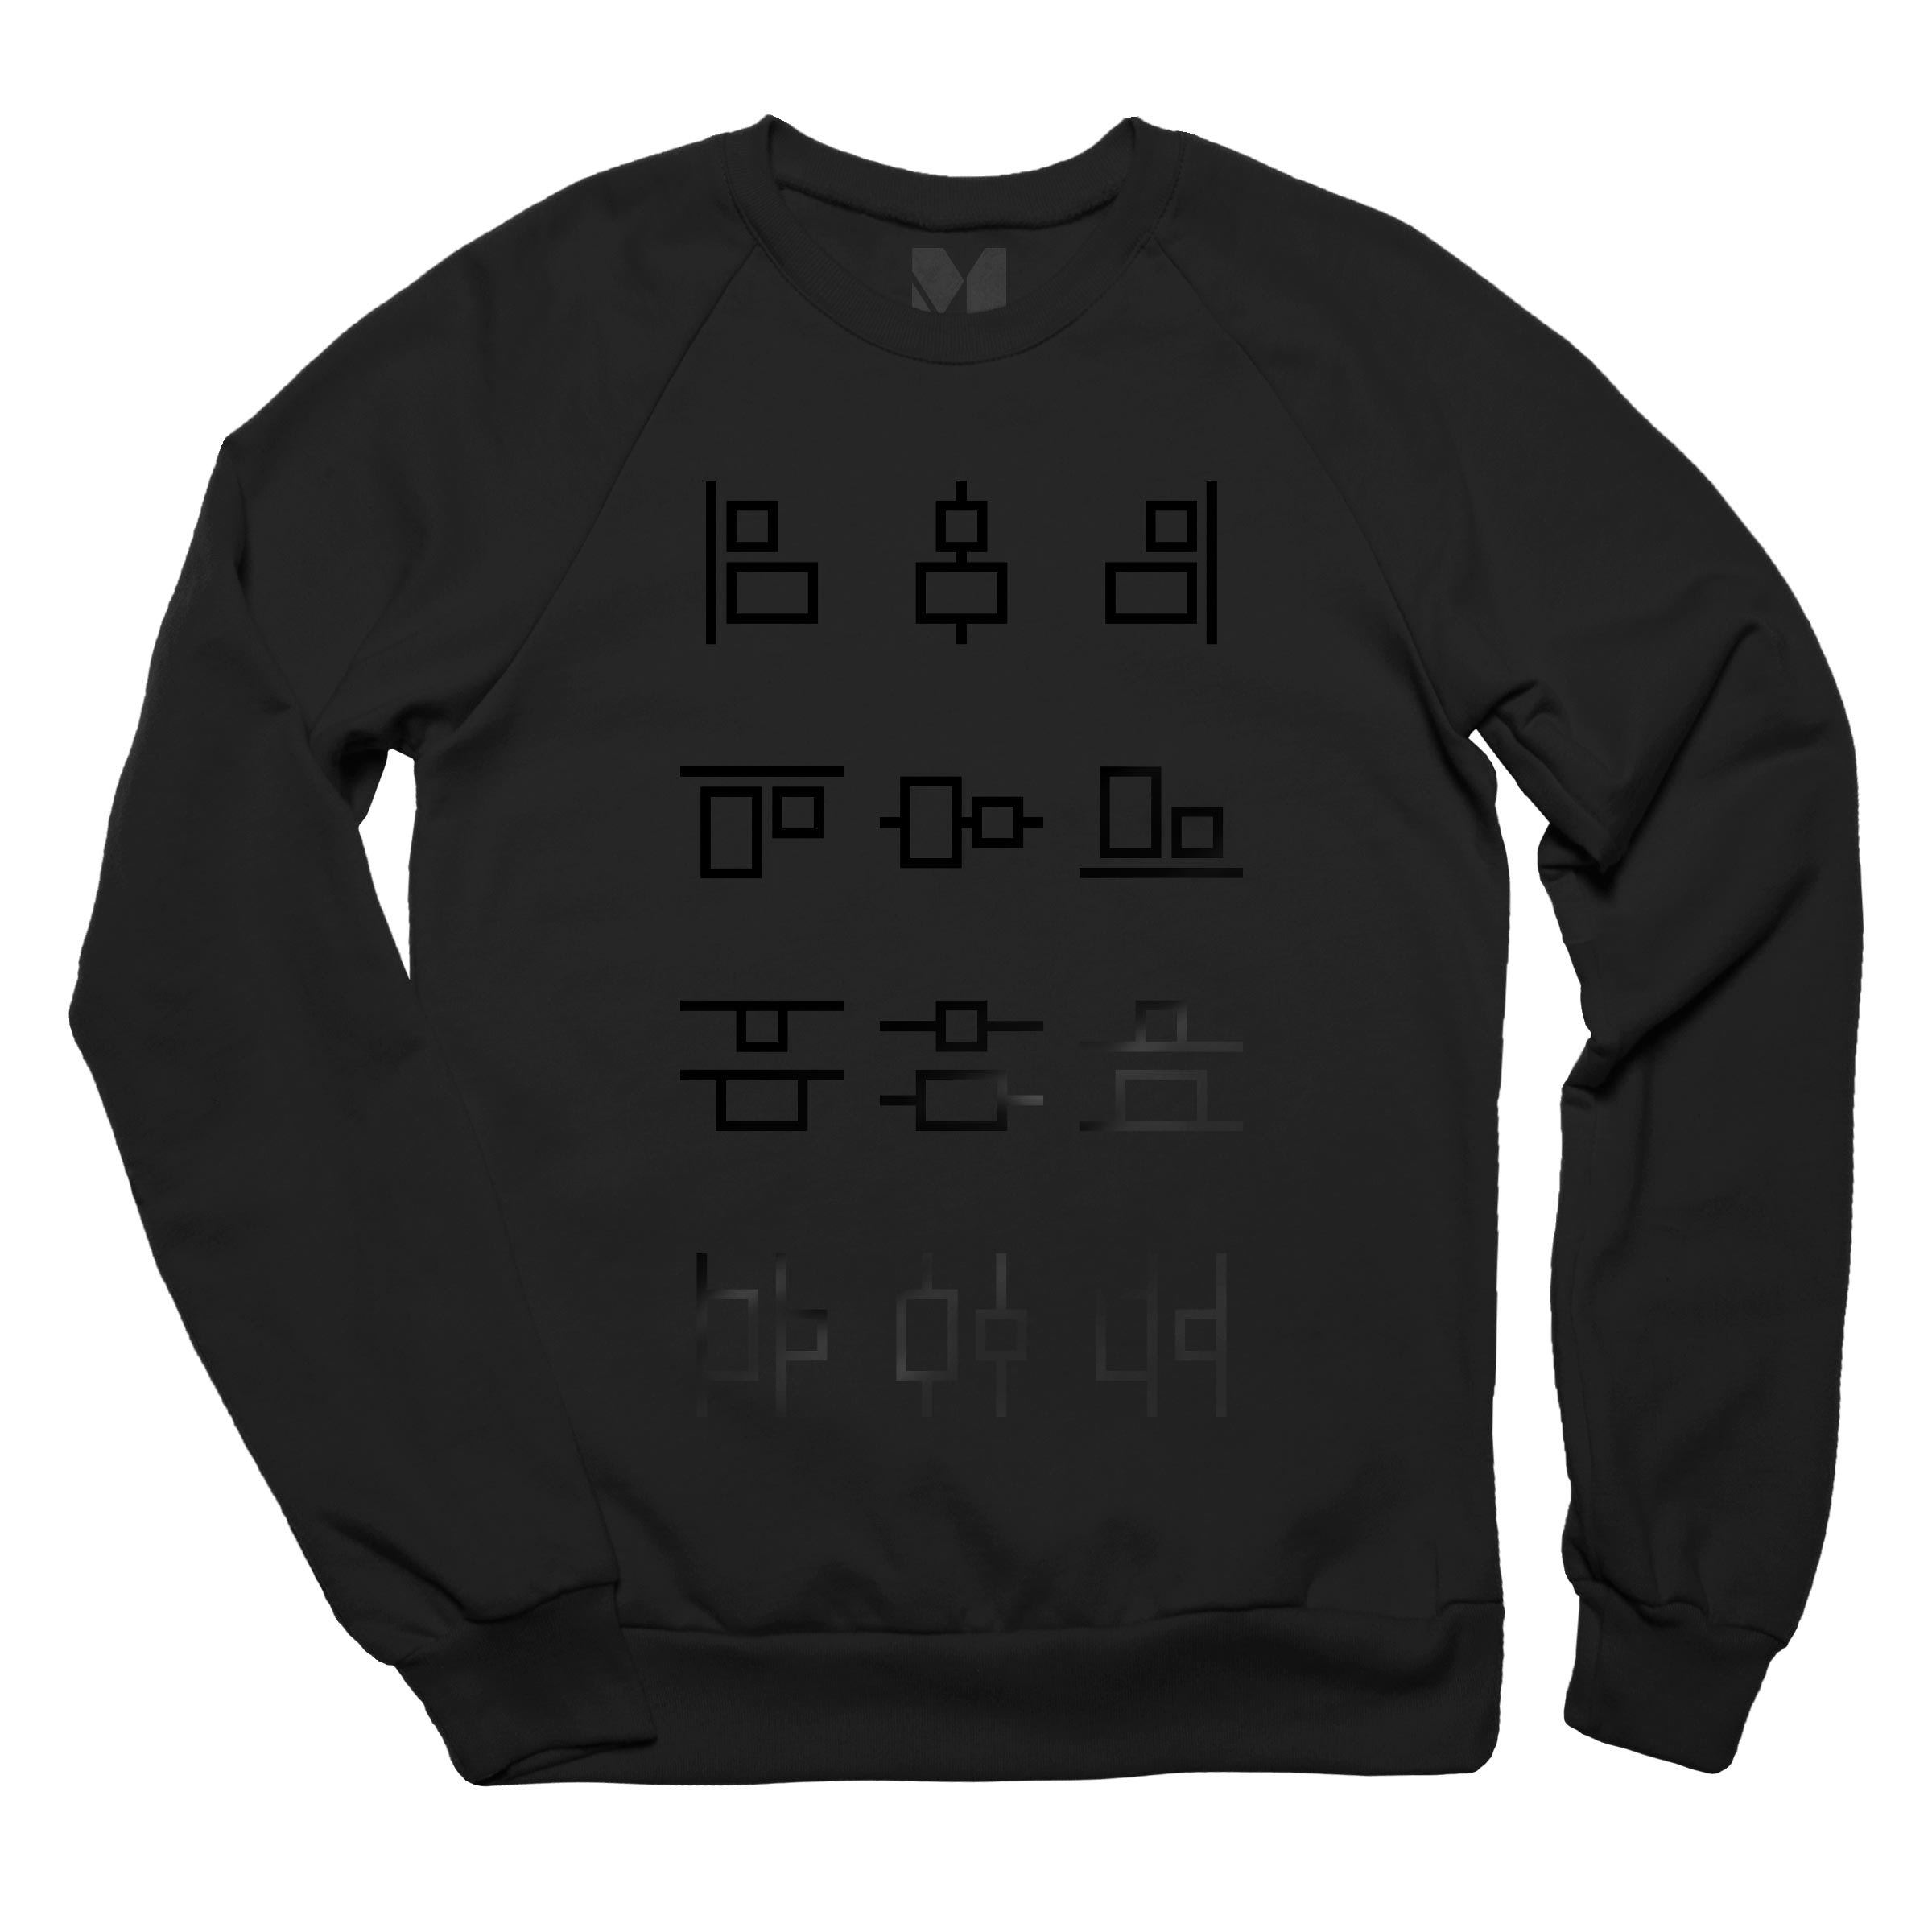 Alignment - Black Friday Pullover Crewneck